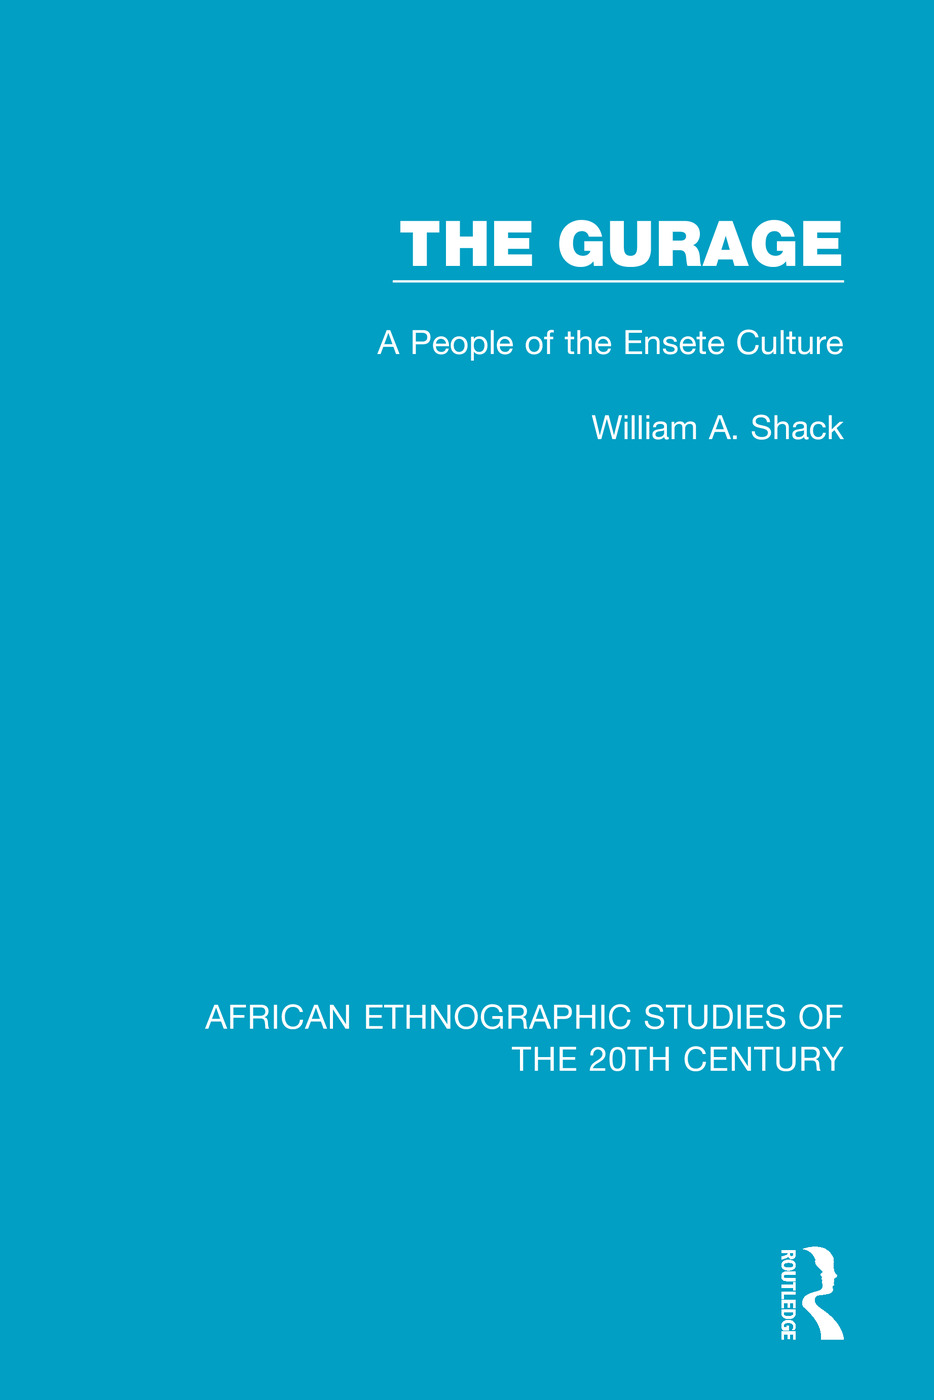 The Gurage: A People of the Ensete Culture book cover